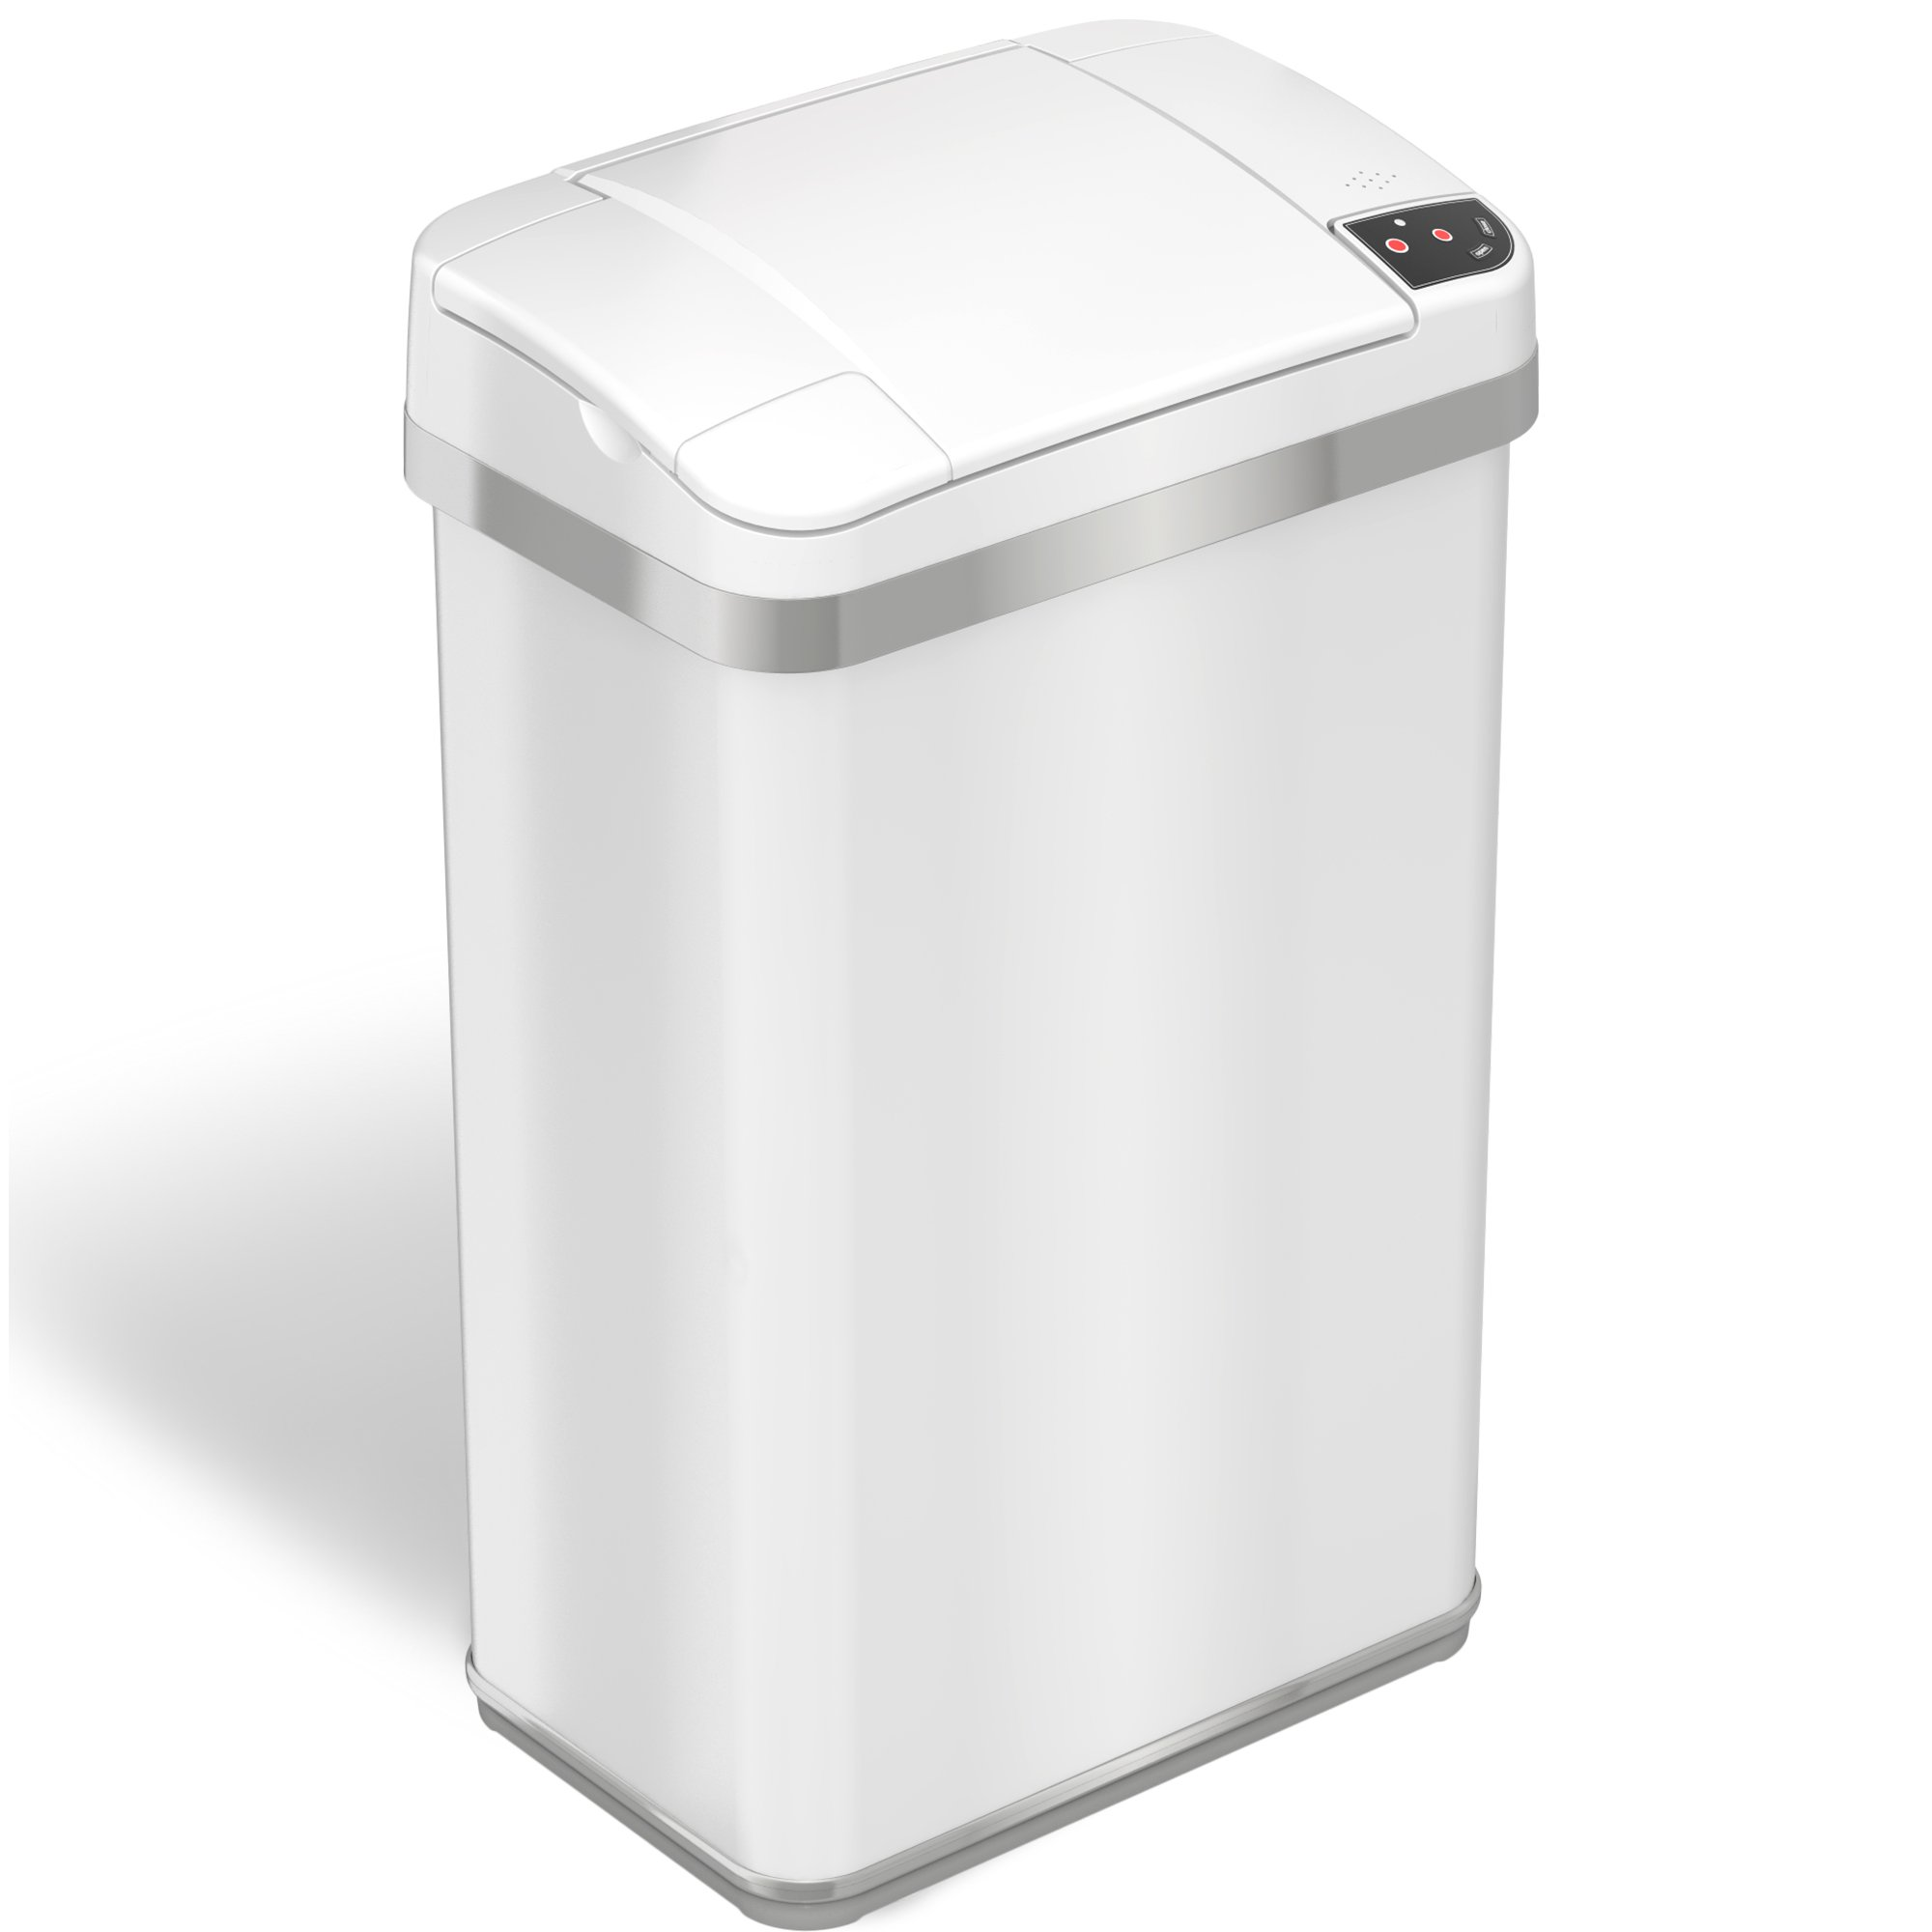 iTouchless Automatic Touchless Sensor Trash Can – includes Odor Filter and Fragrance – 4 Gallon / 15 Liter - White